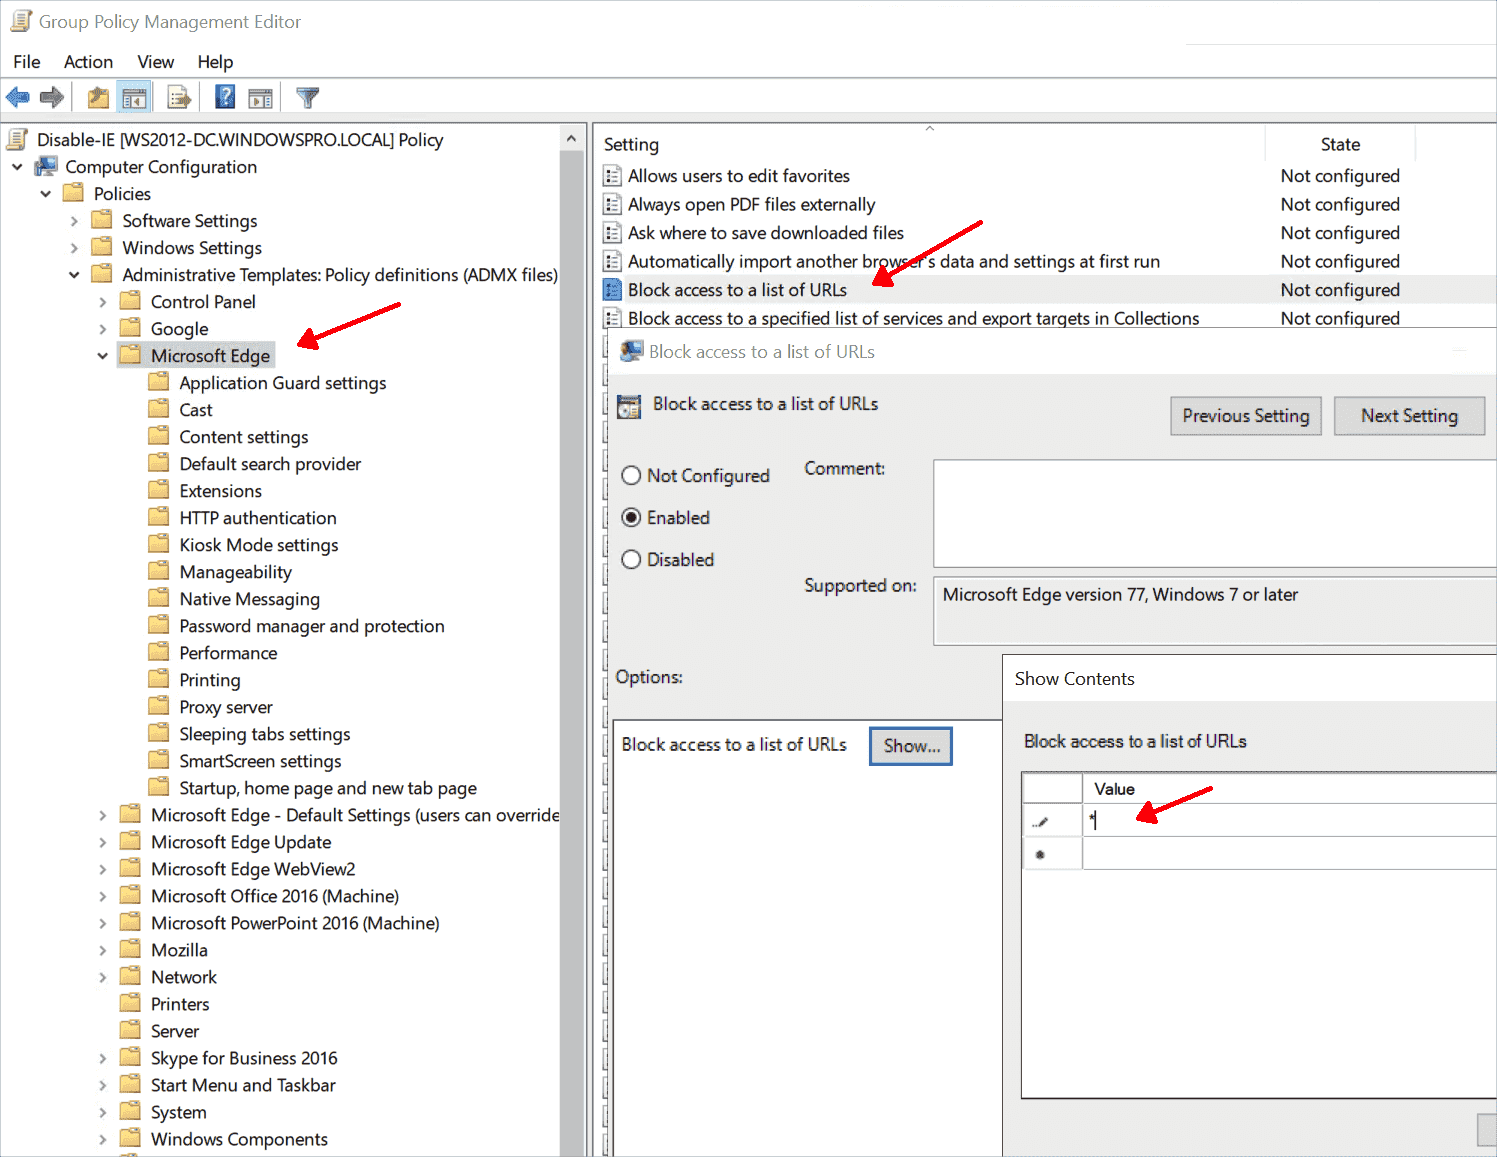 Edge can be disabled via GPO by blocking all URLs